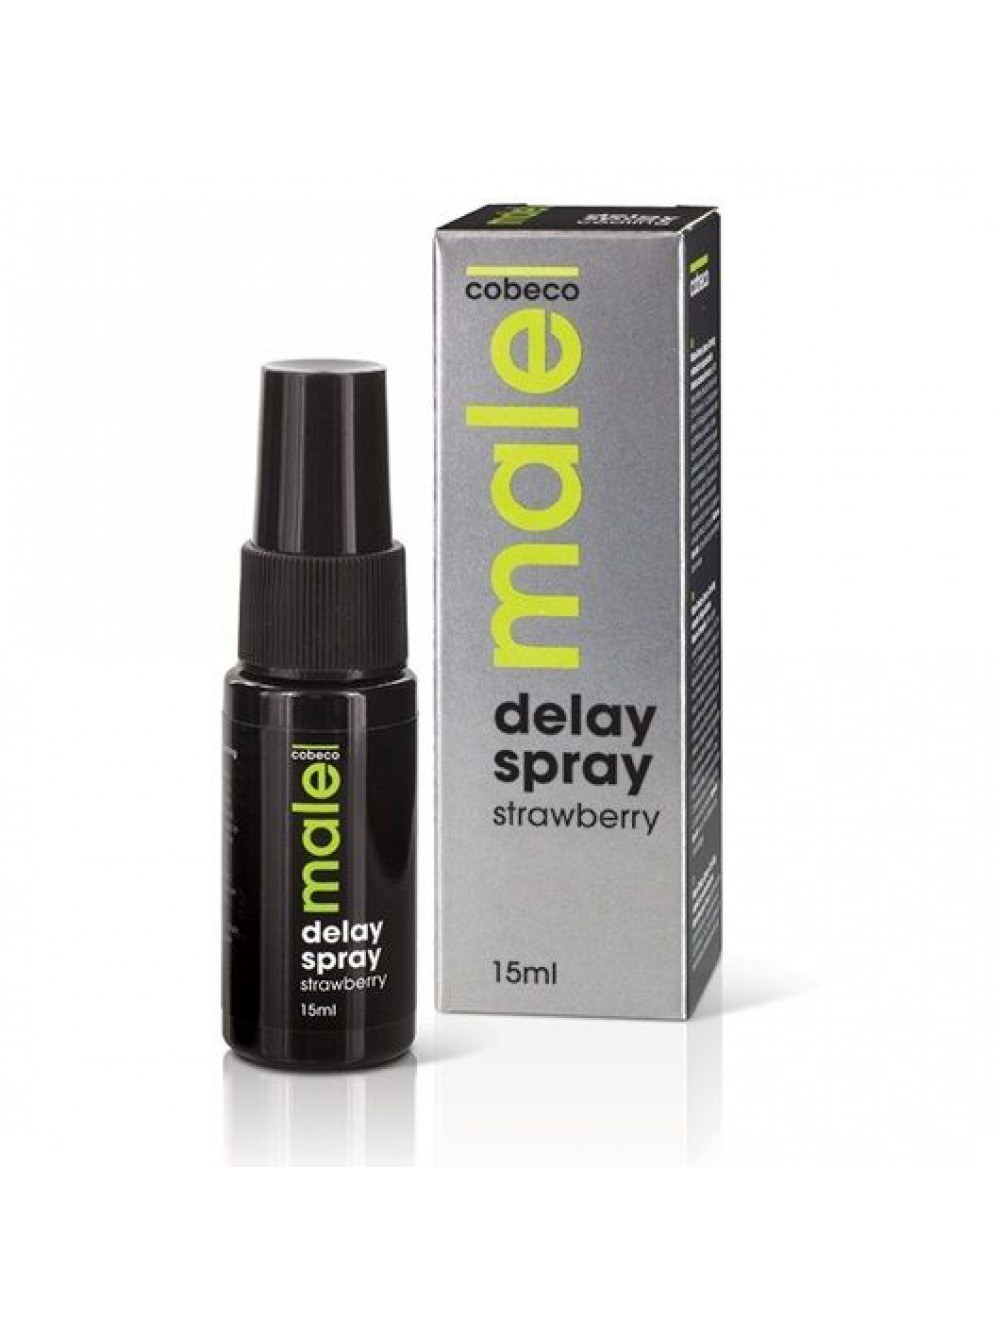 MALE COBECO STRAWBERRY  DELAY SPRAY 15 ML